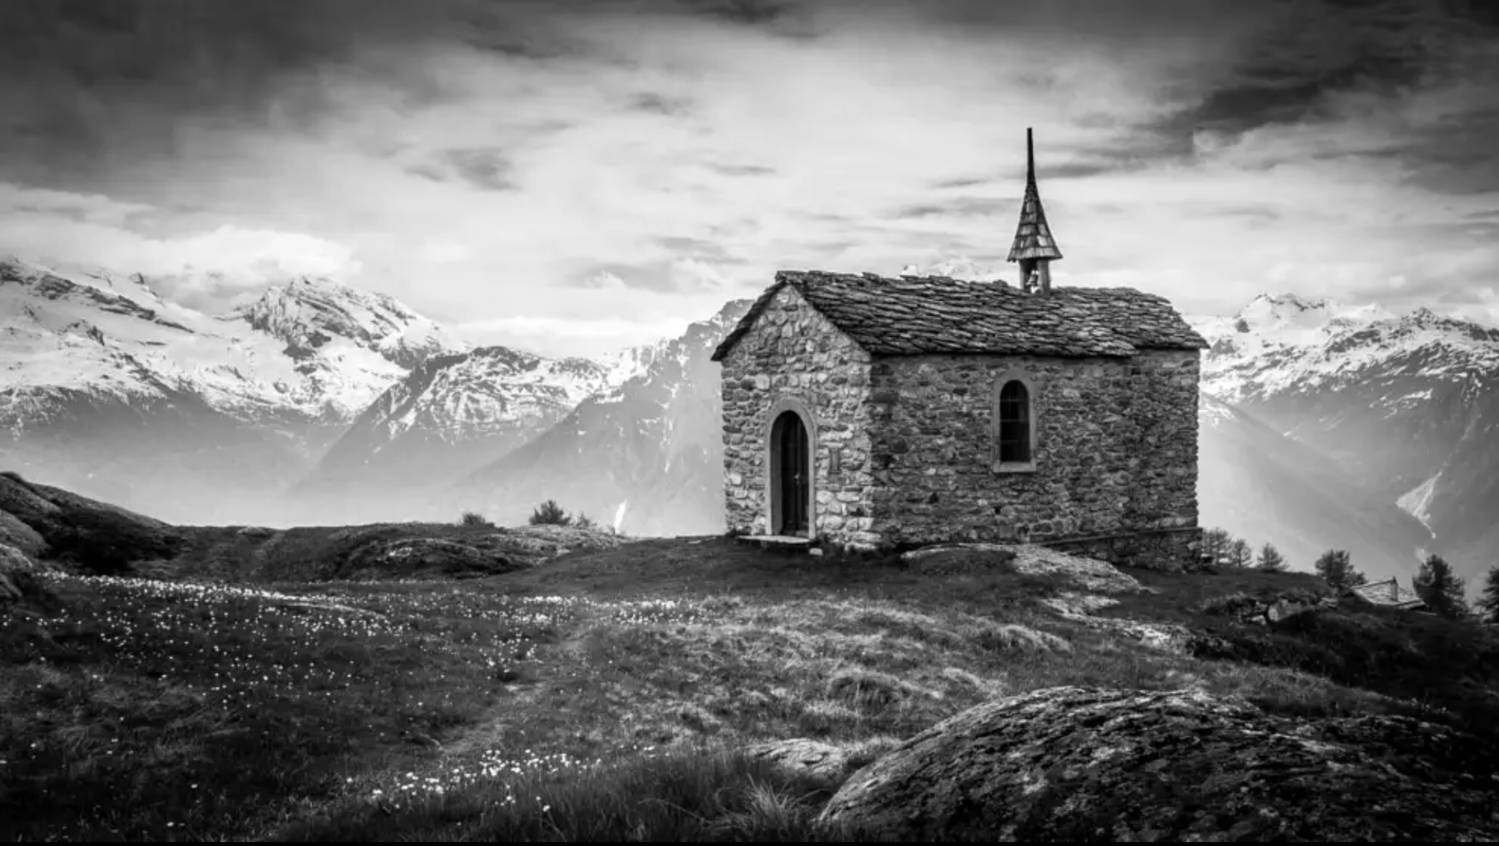 Chapel in the mountains (Switzerland) by Joel V